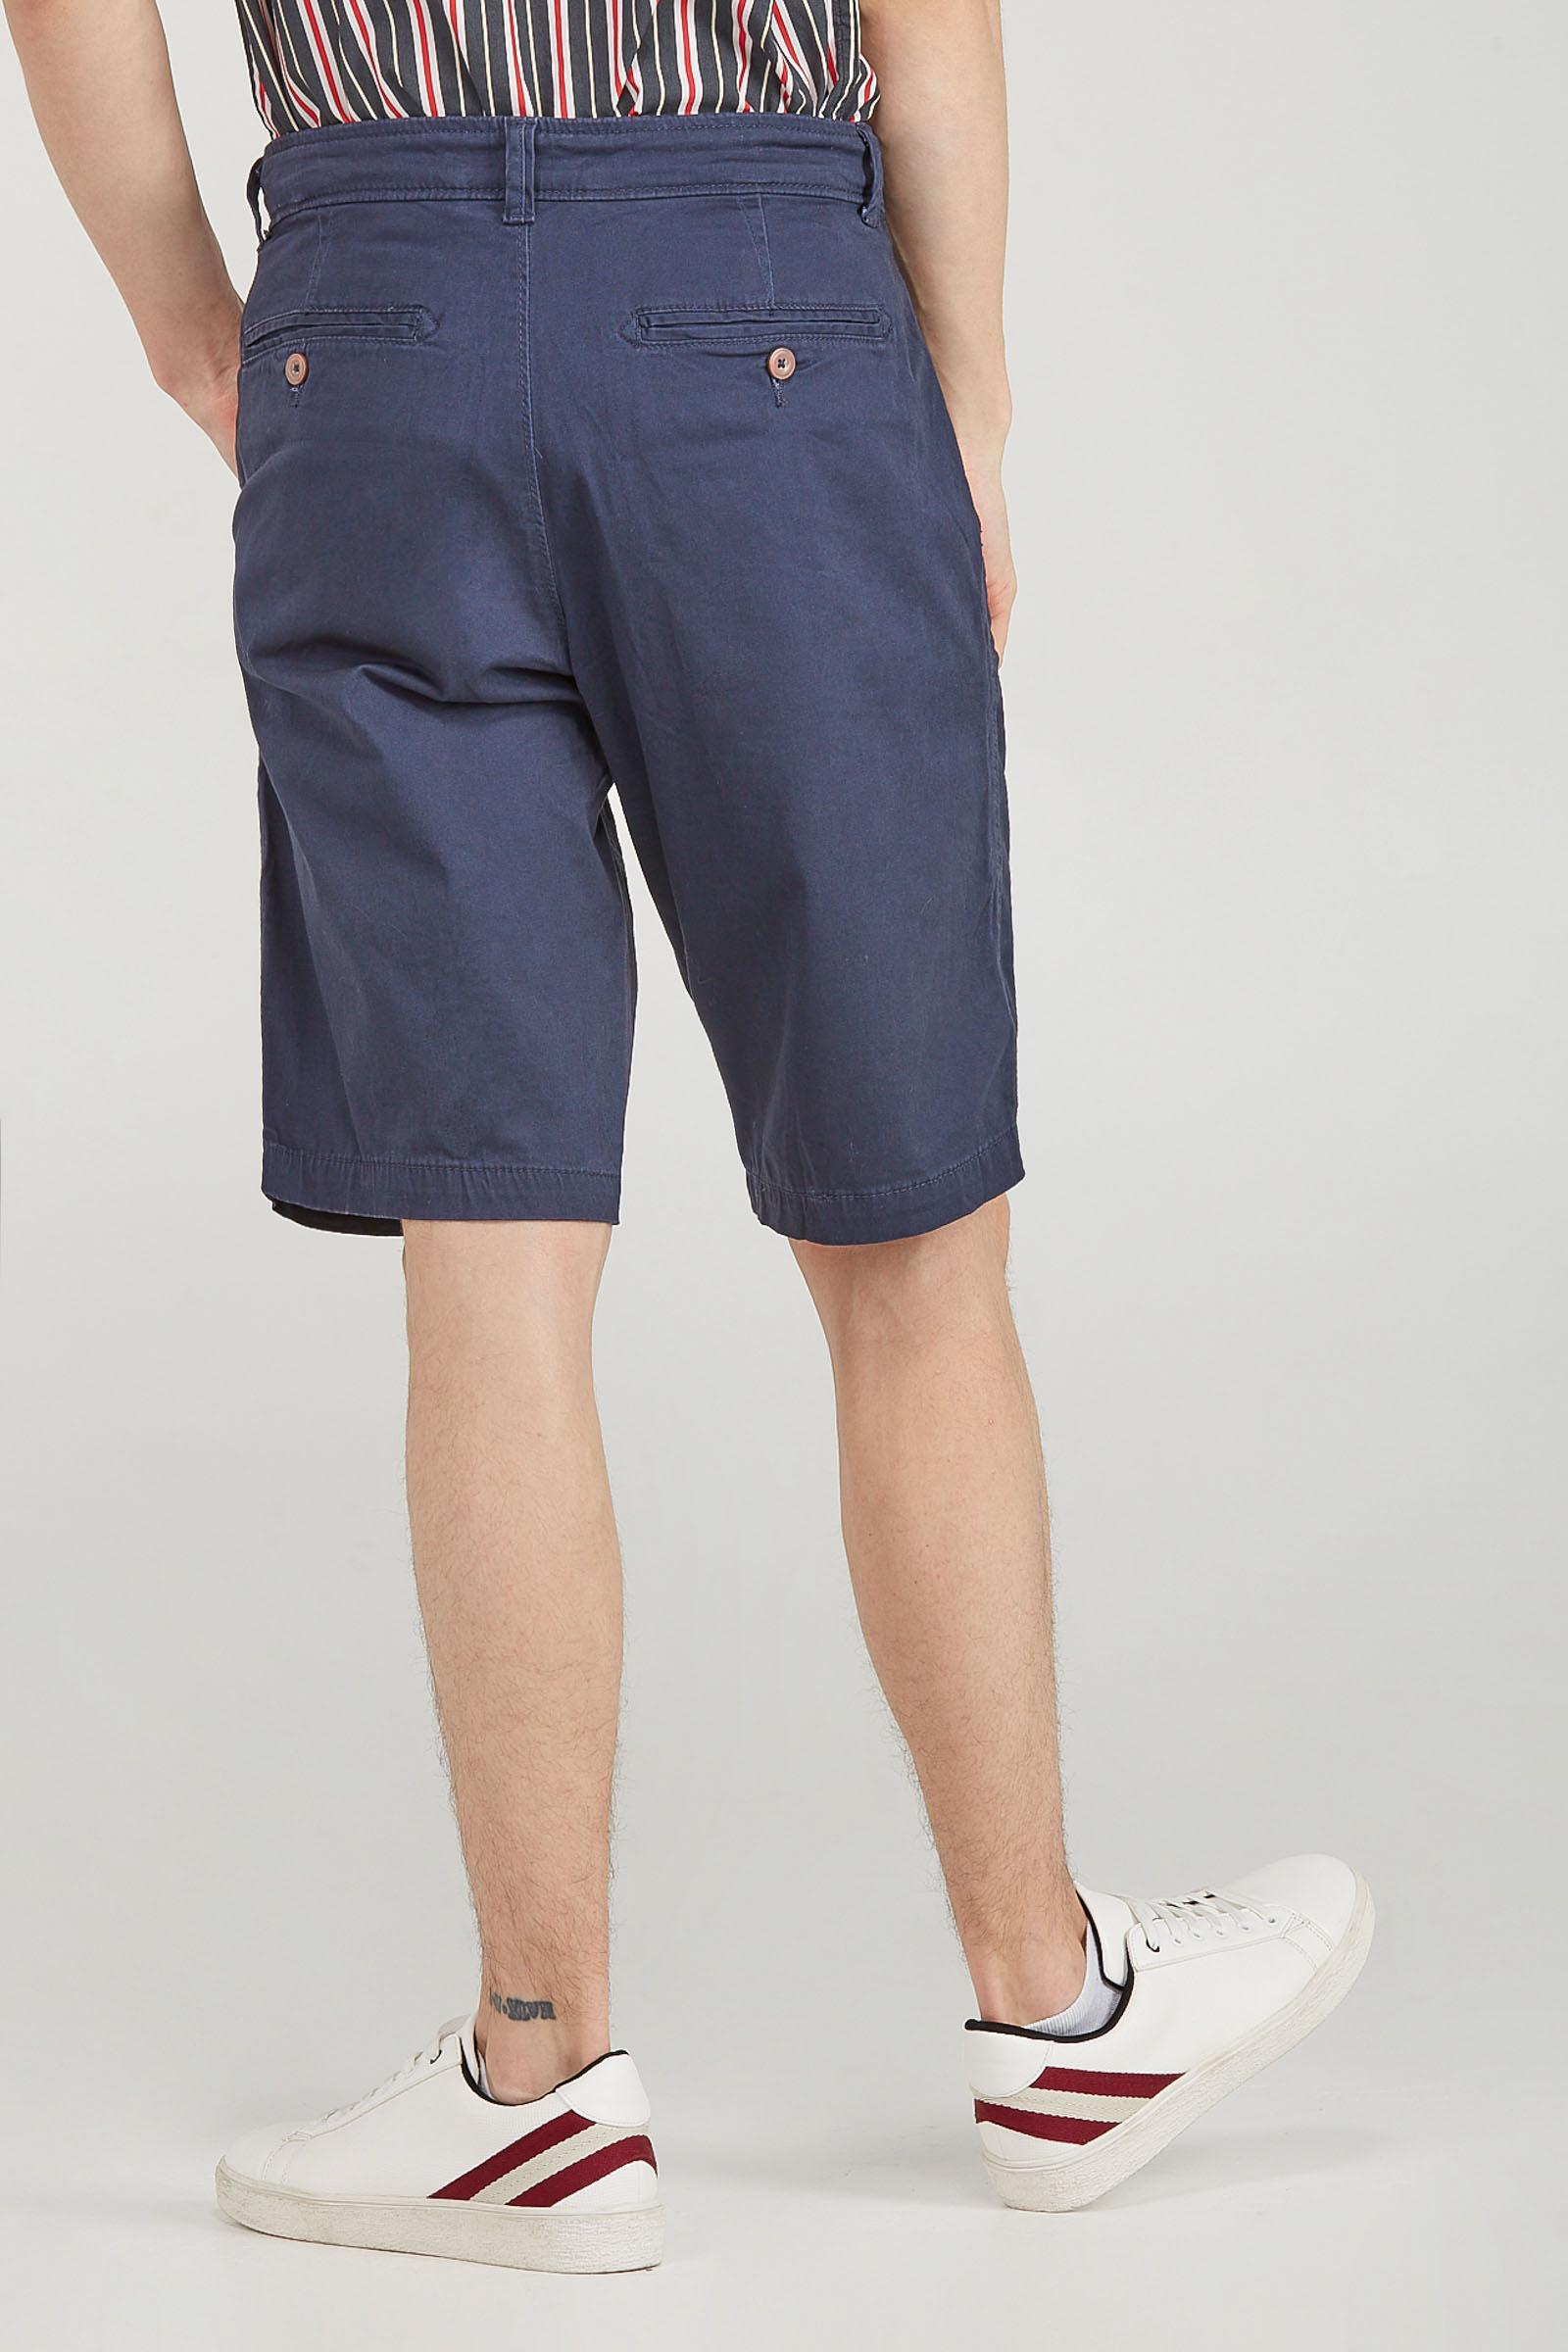 KOAJ-BERMUDA KOAJ CHINA 11 SLIM FIT 4/19